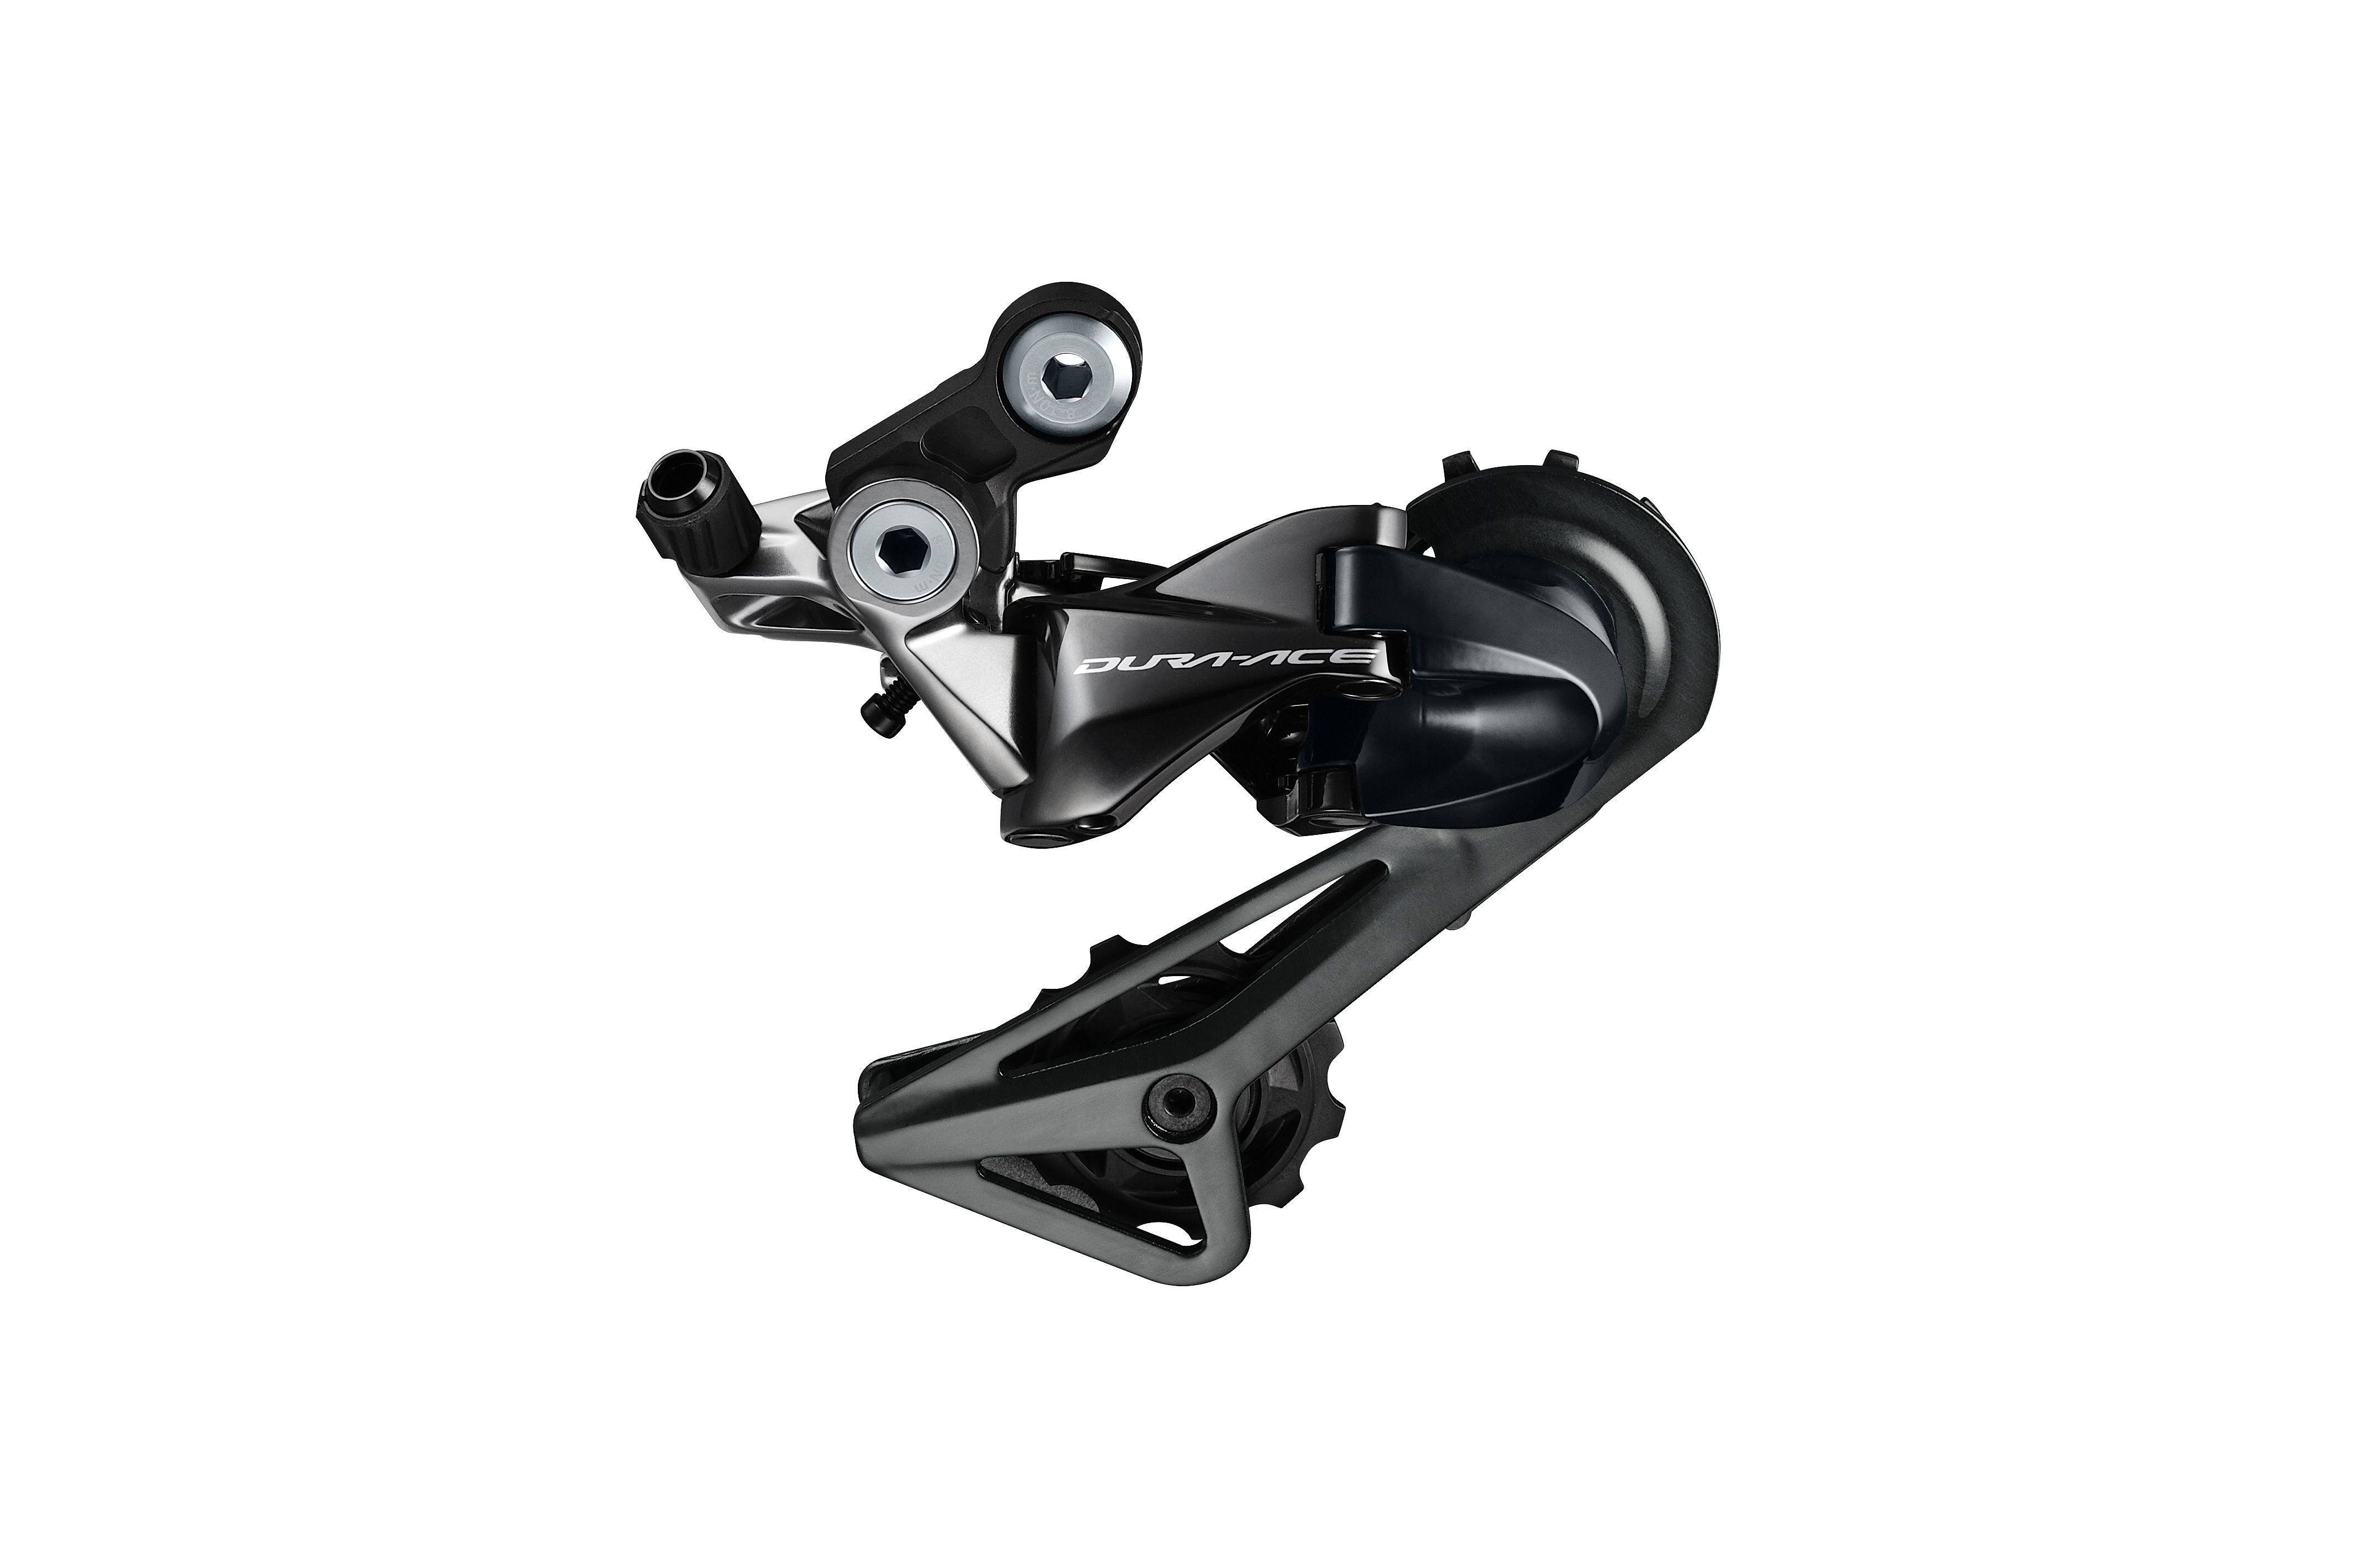 9100-series was the end of Dura Ace mechanical